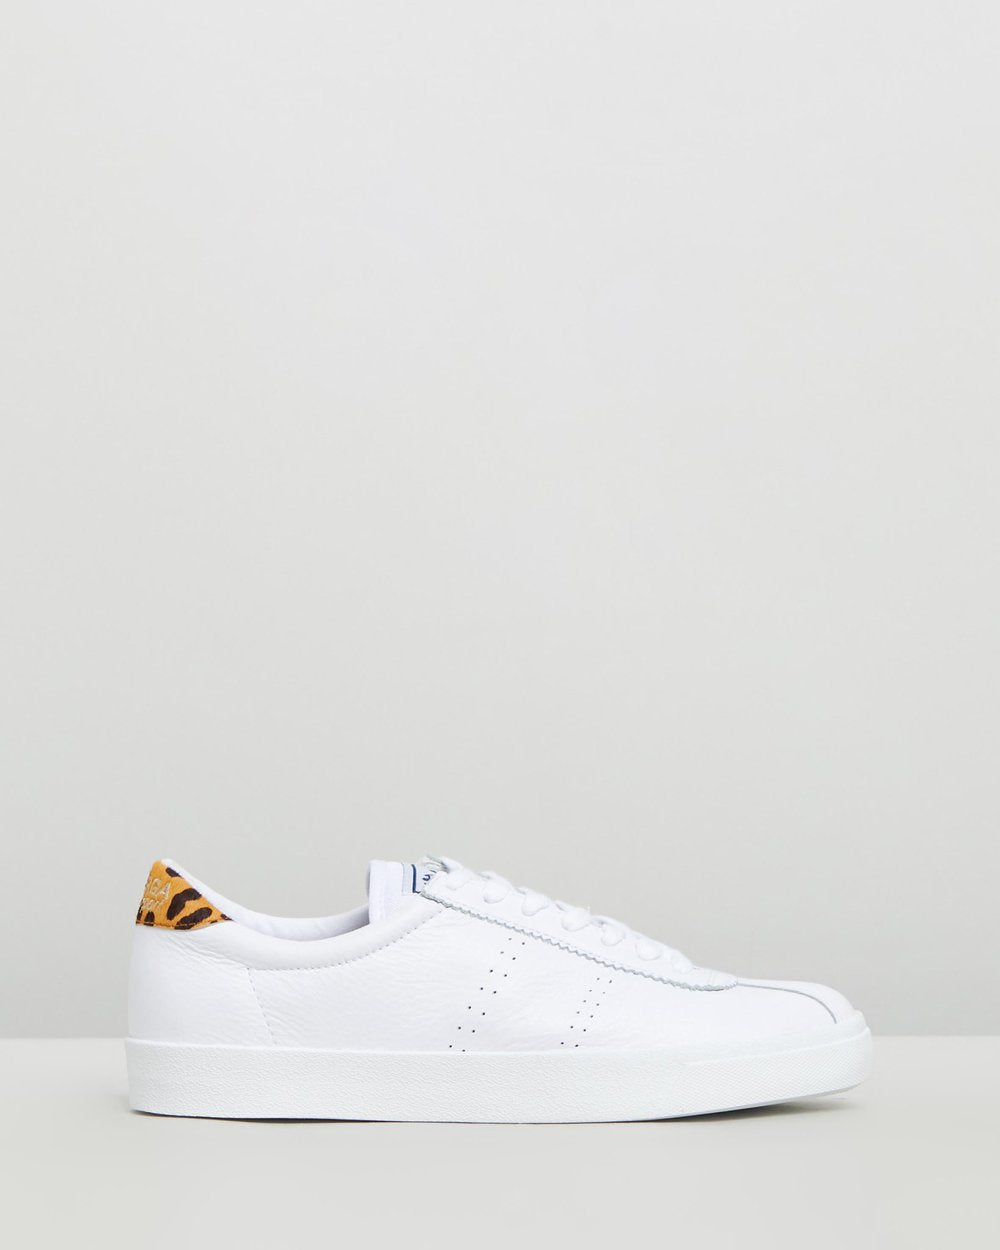 Superga White Leopard Leather Sneaker